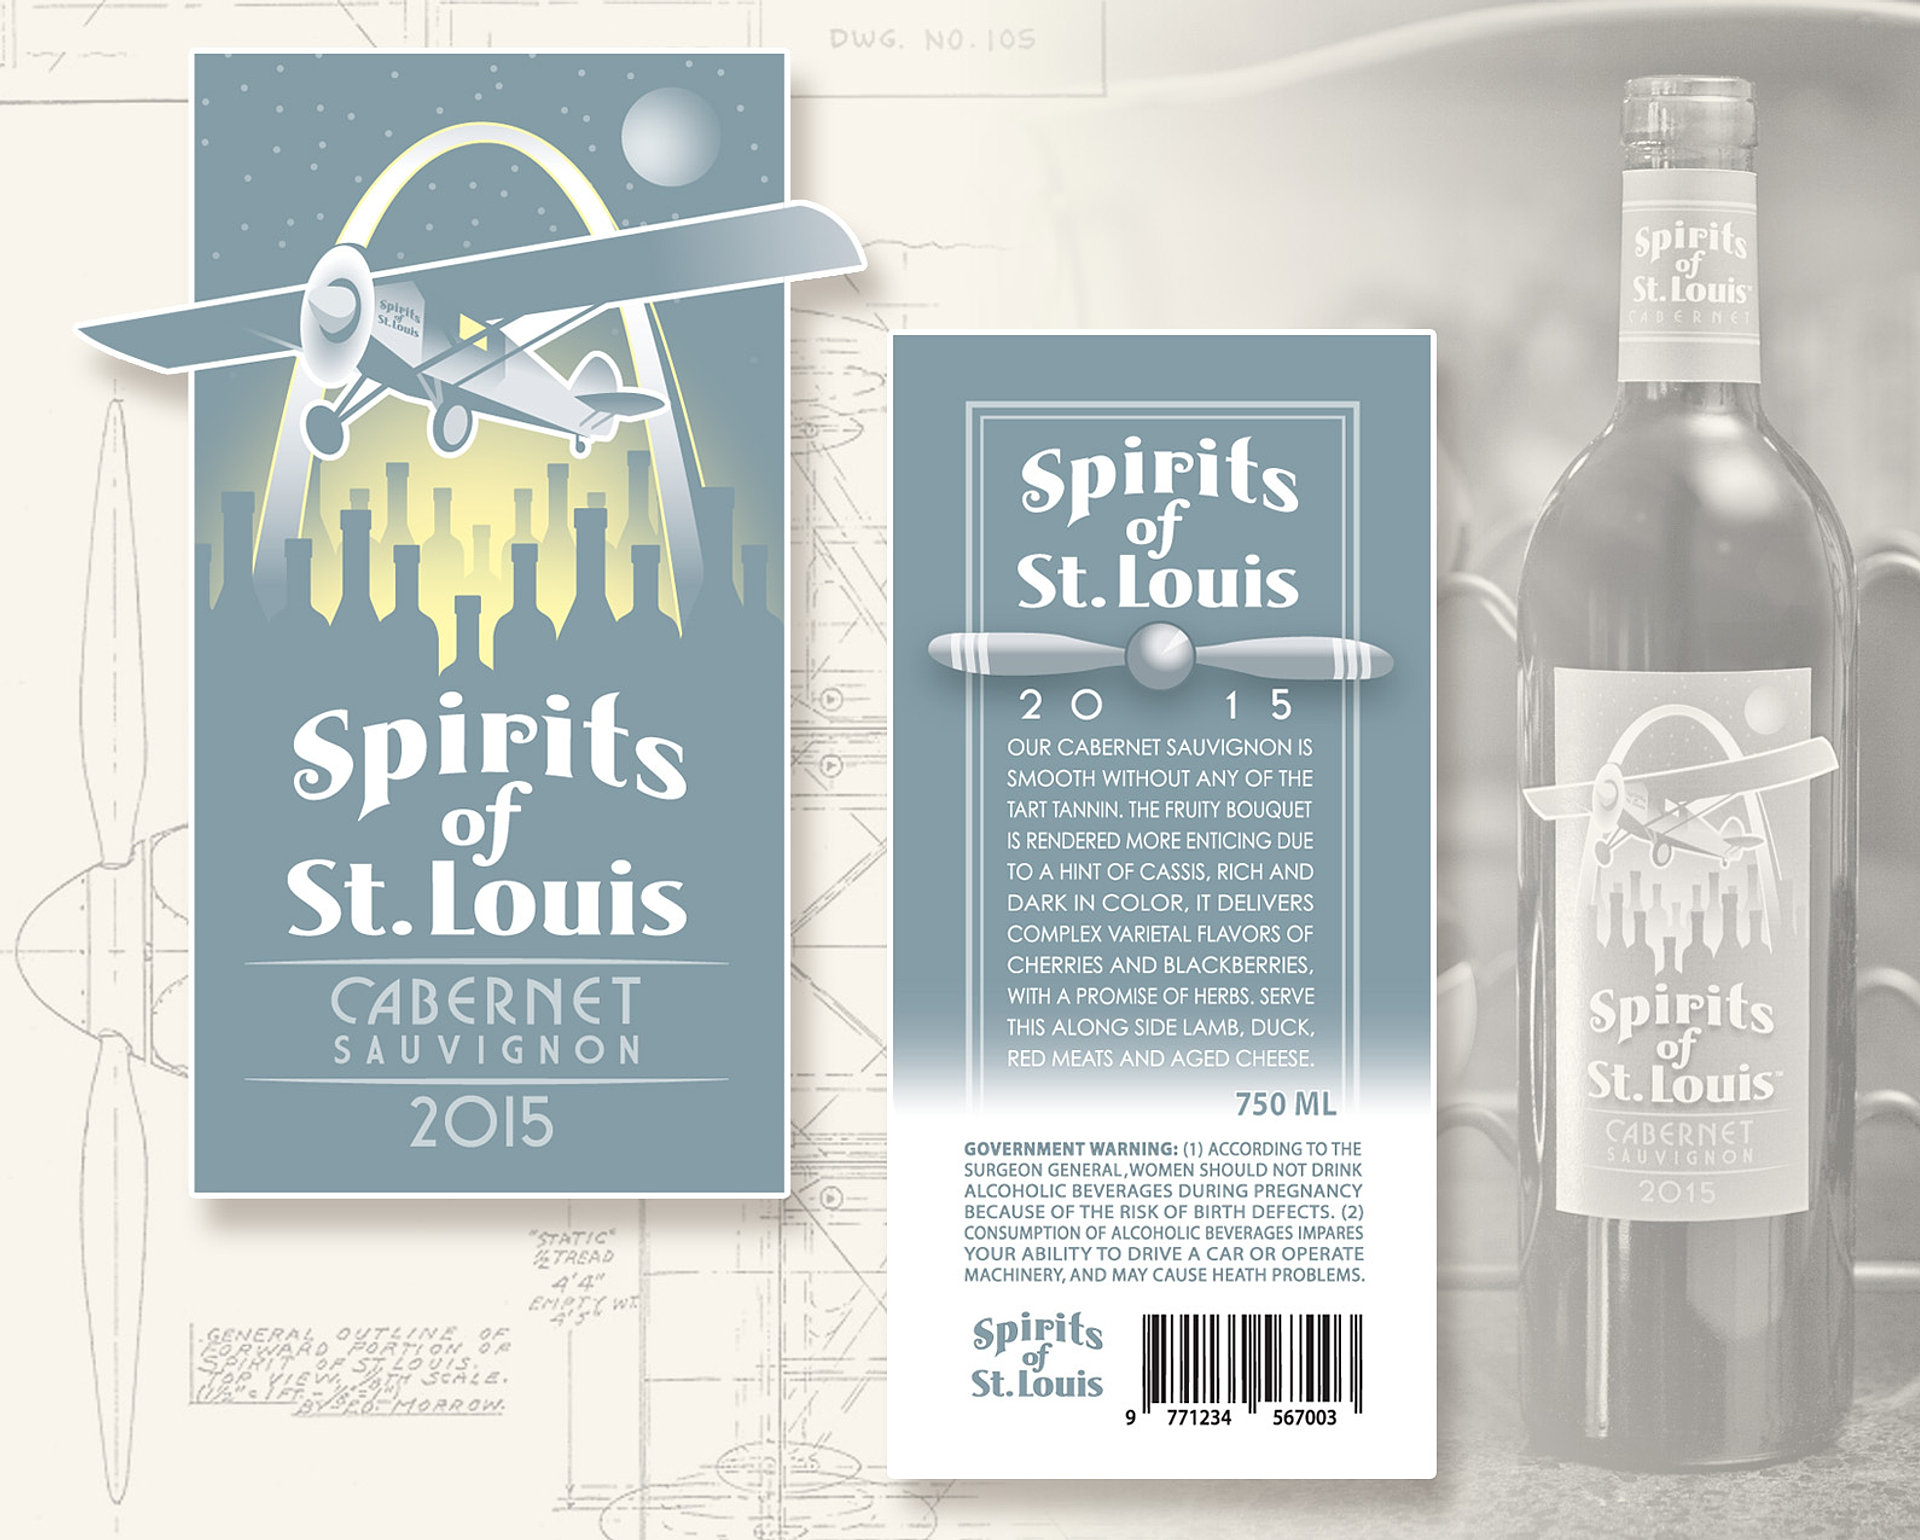 Color printing at purdue - Spirits Of St Louis